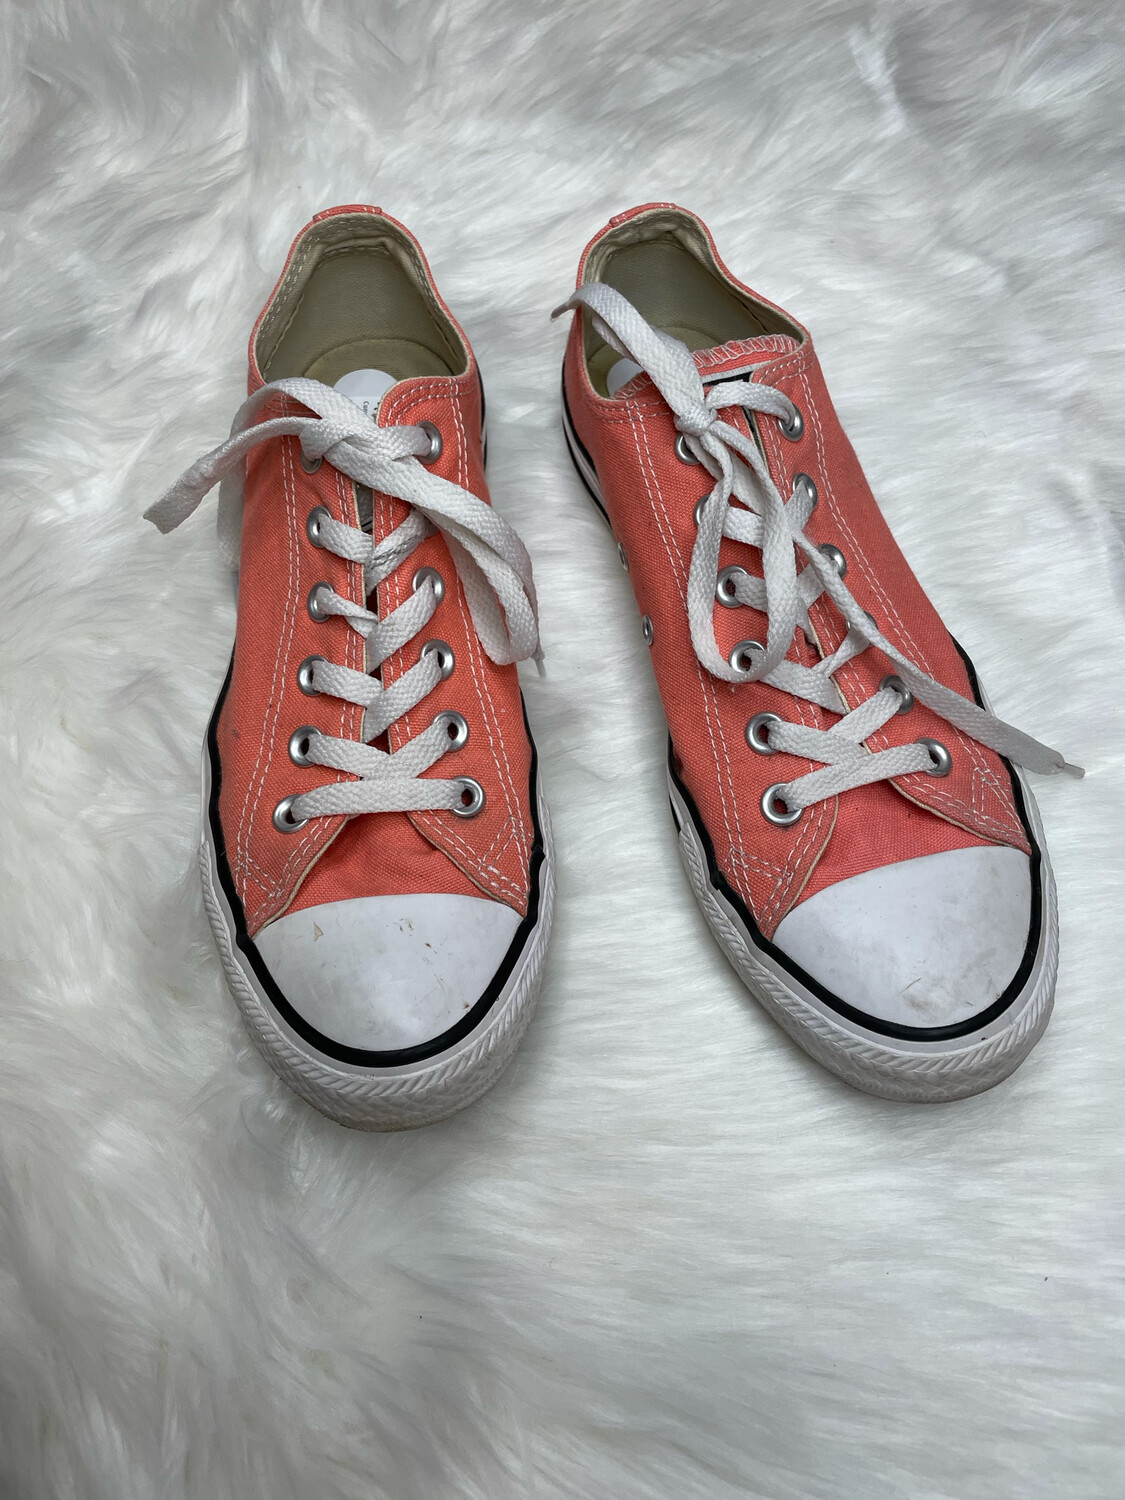 Converse Pink Lace Up Low Top All Stars - Size 9